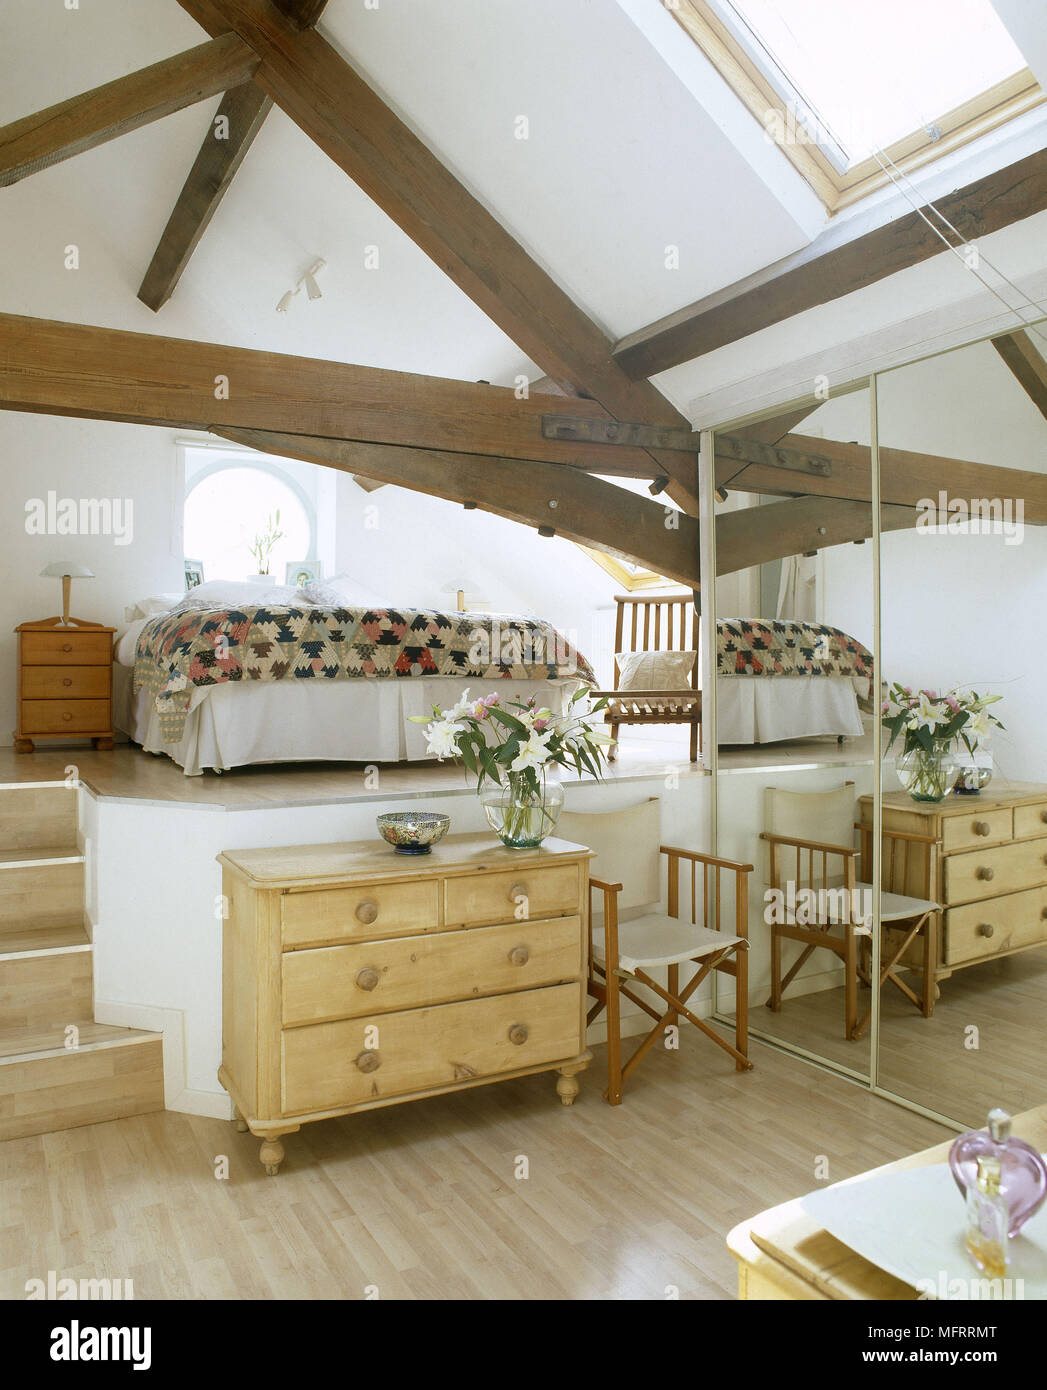 Modern Country Schlafzimmer A Modern Country Style Split Level Bedroom With Exposed Beams Bed